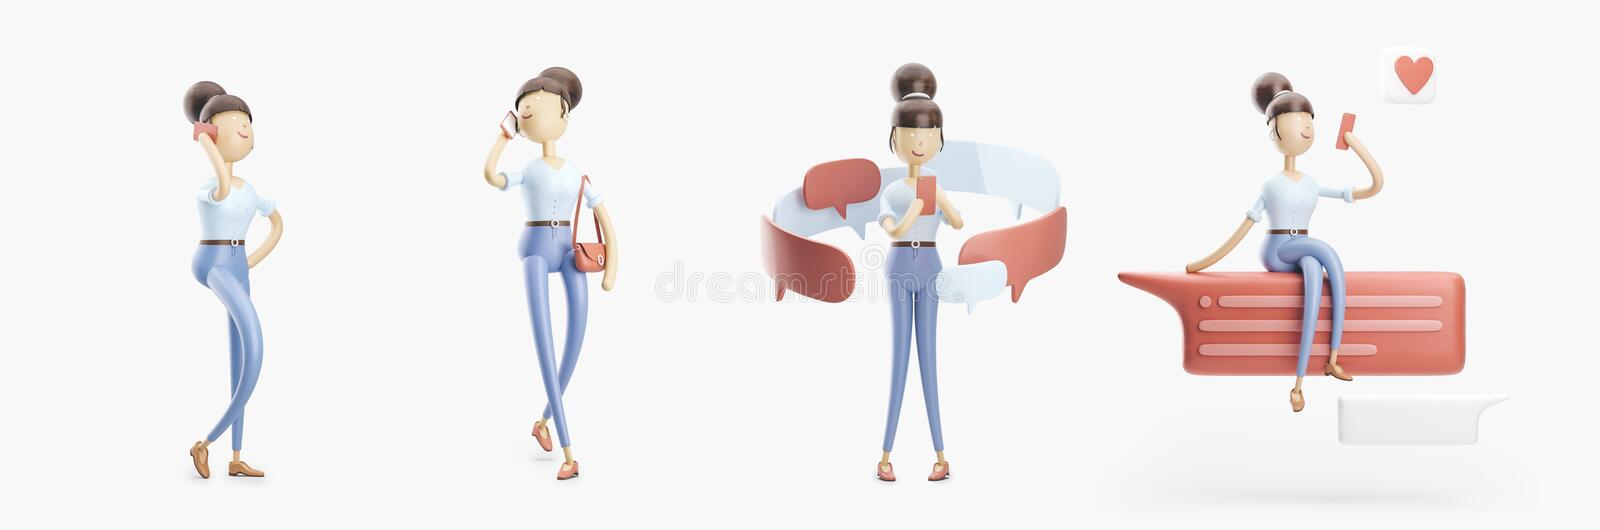 Cartoon character is sending a message and talking on the phone. set of 3d illustrations royalty free illustration